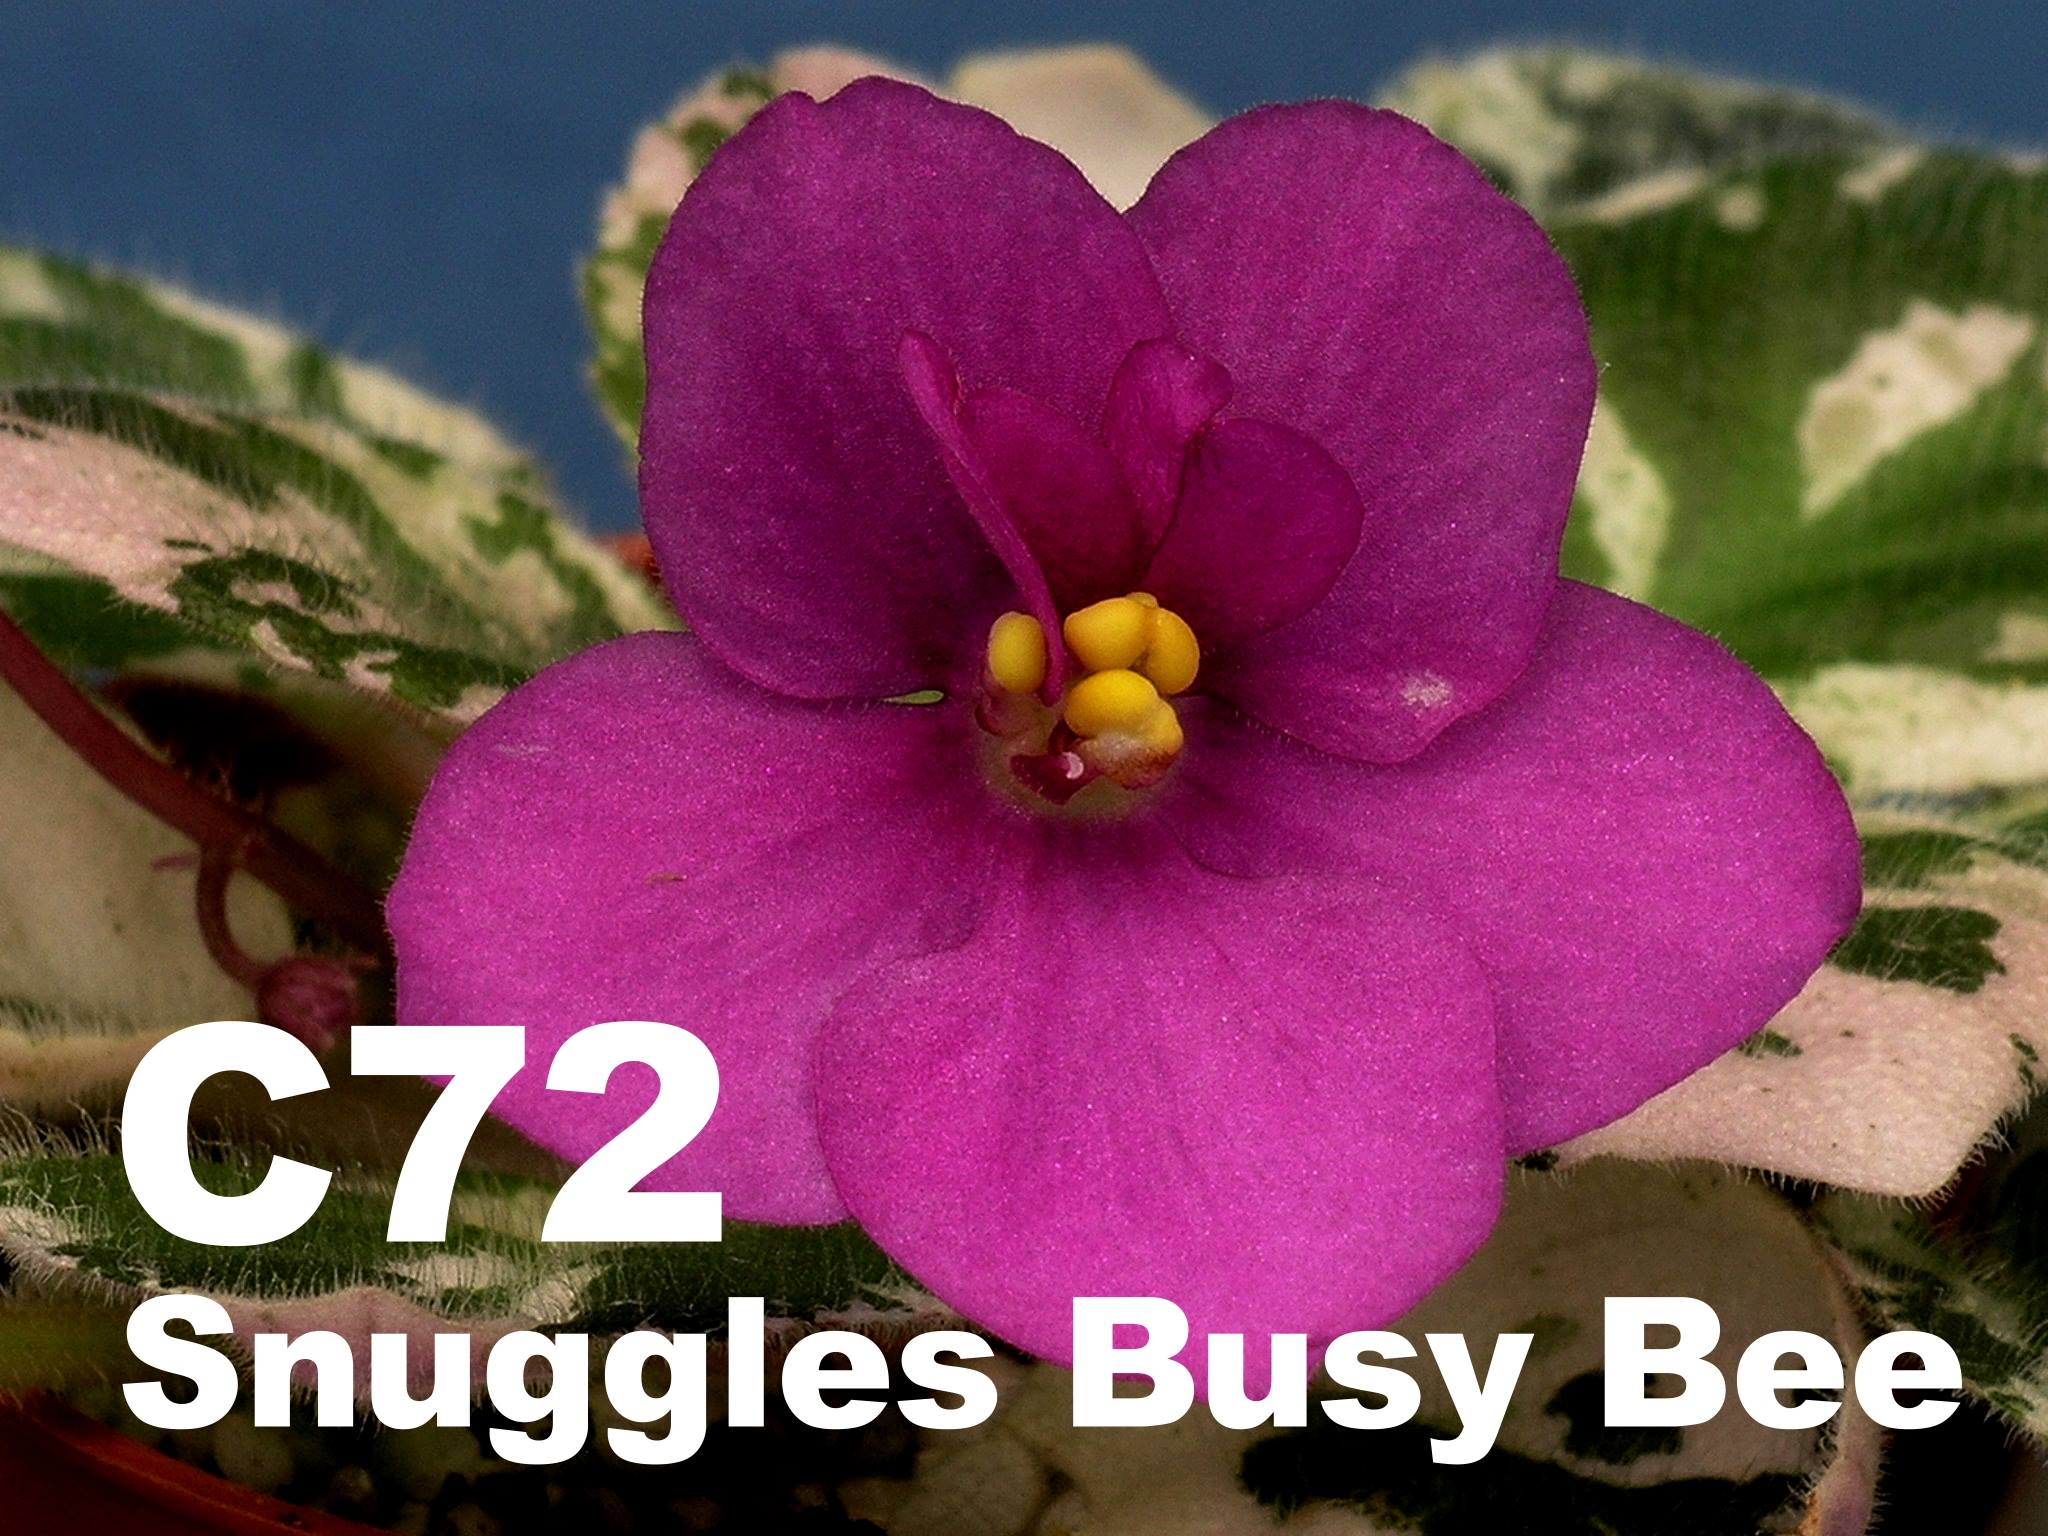 [C72] Snuggles Busy Bee C72